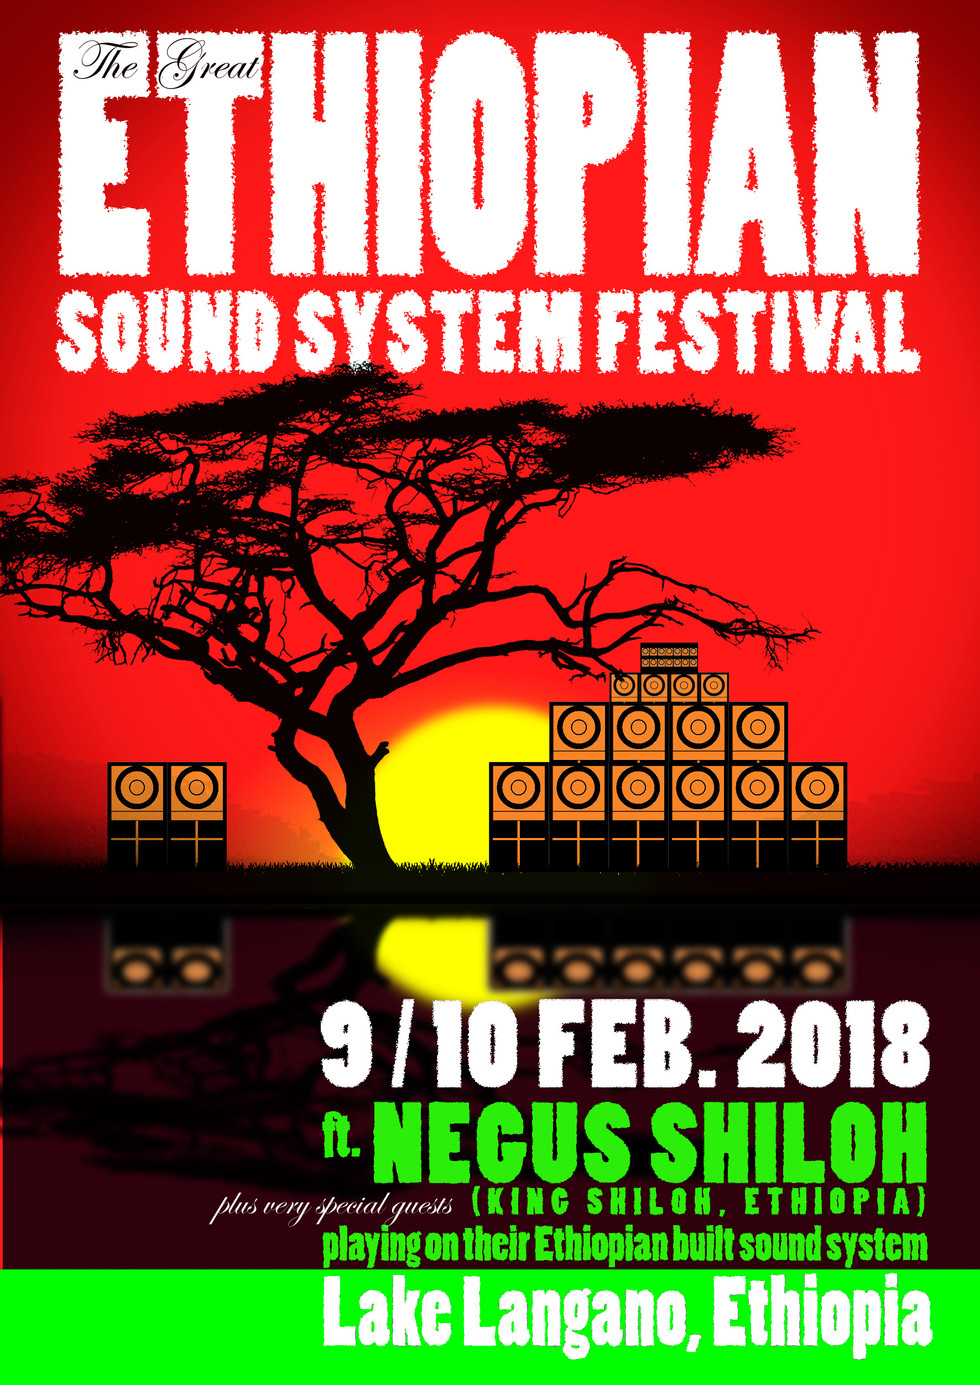 King Shiloh presents: The Great Ethiopian Soundsystem  Festival!